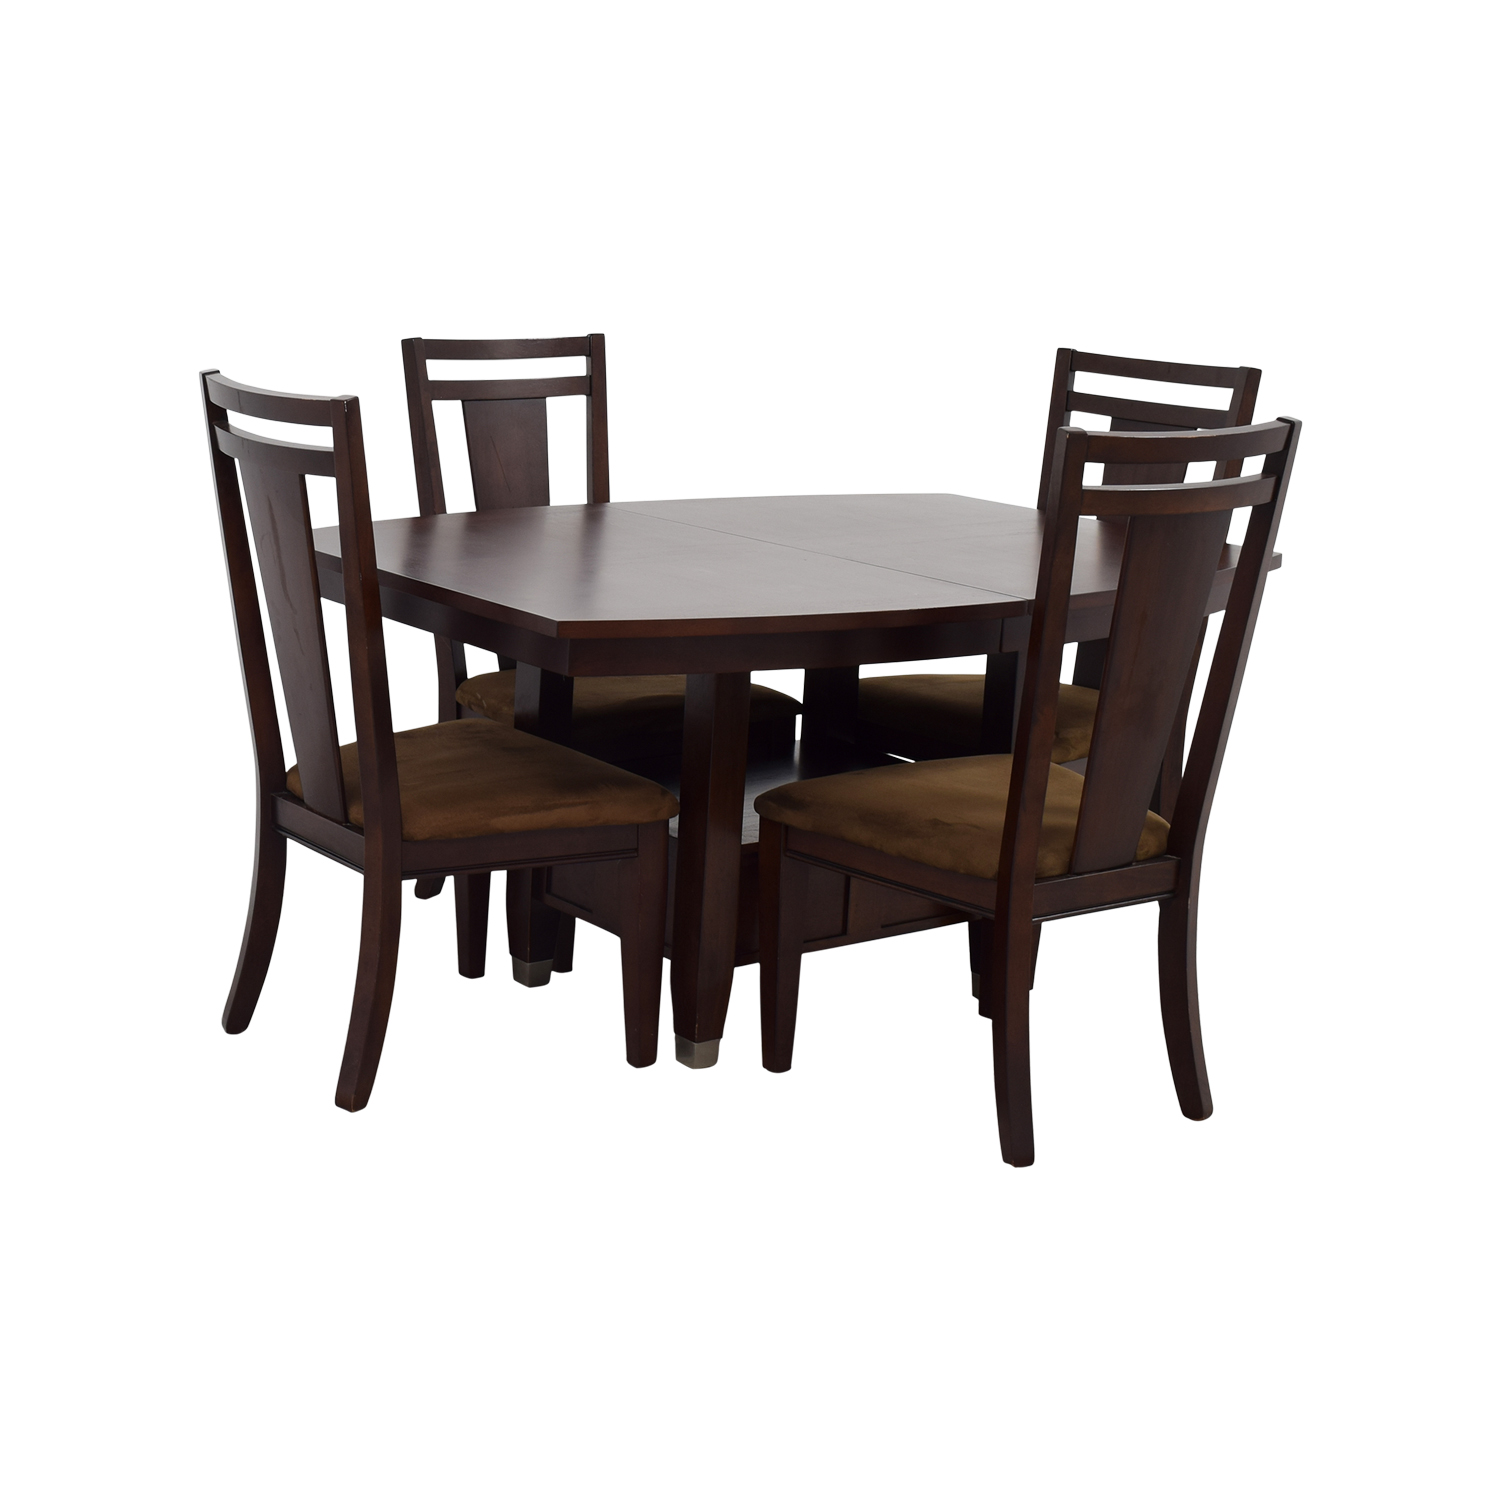 78 off broyhill broyhill wood dining table set tables. Black Bedroom Furniture Sets. Home Design Ideas